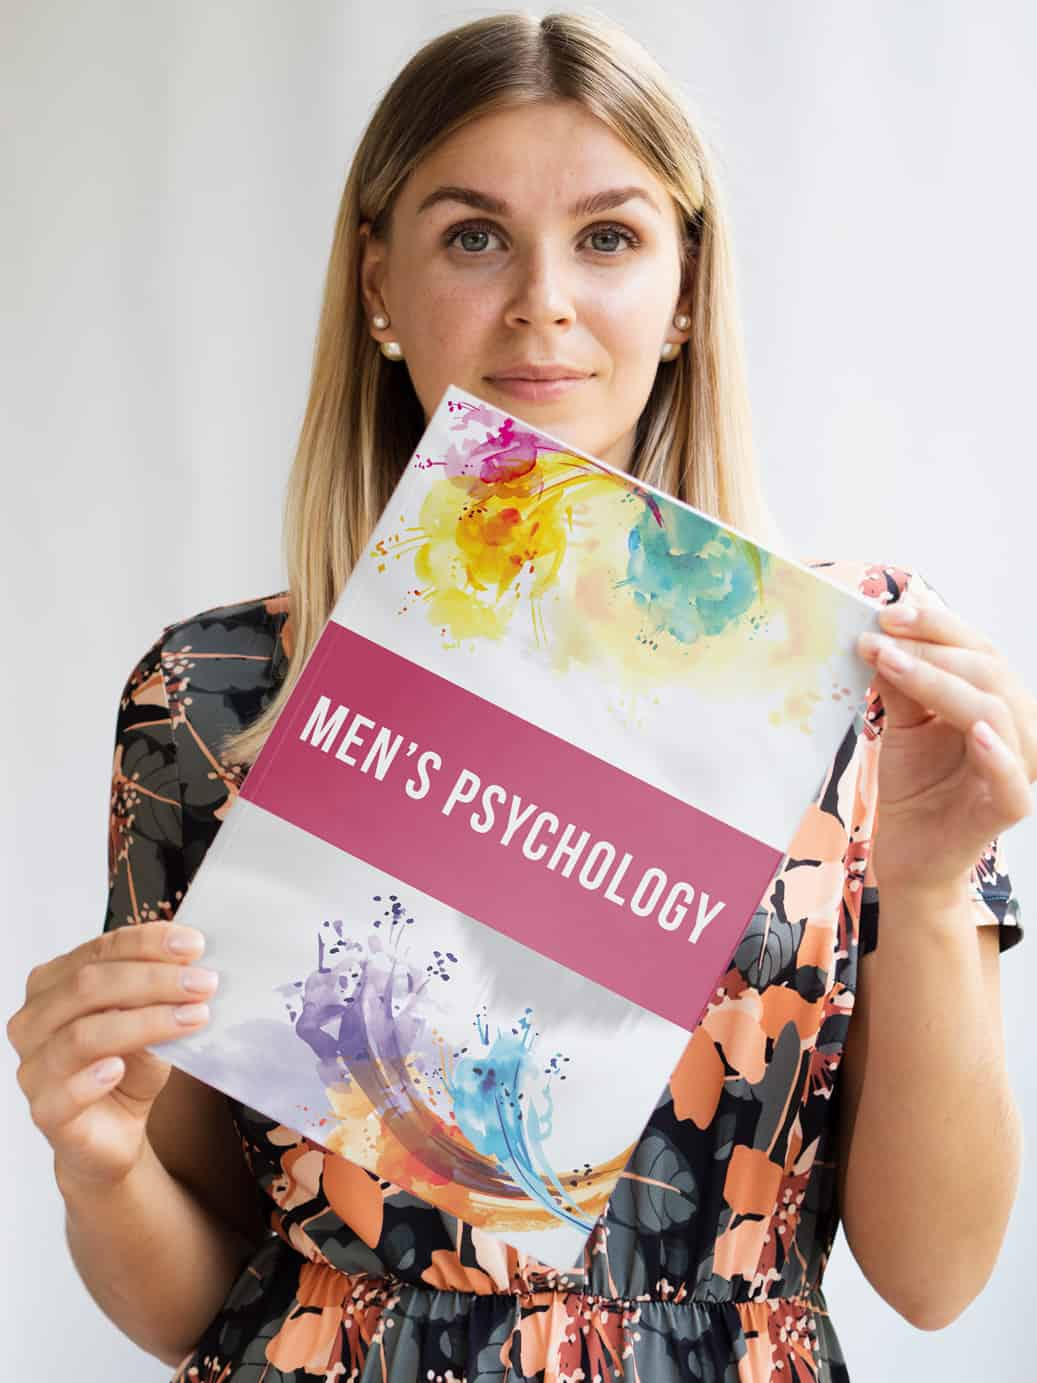 Woman holding 'Men's Psychology' book